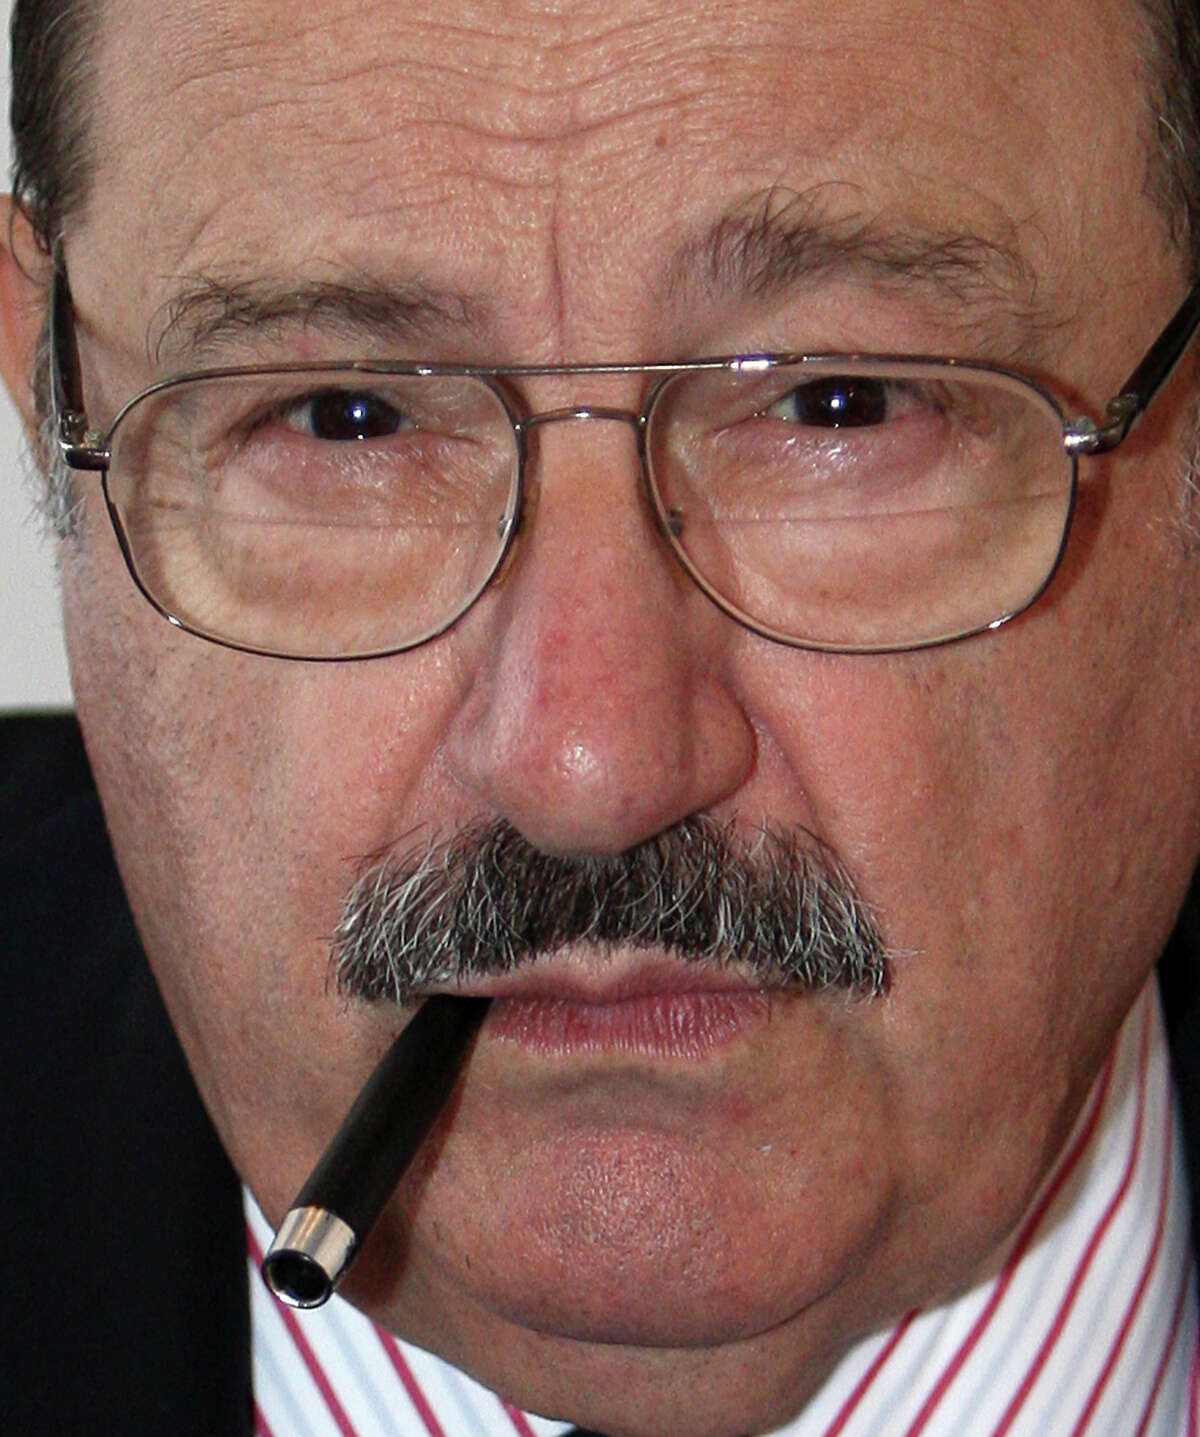 """FILE - In this Wednesday, Sept. 30, 2009 file photo, Italian writer Umberto Eco is seen prior to a press conference at the Louvre Museum in Paris, France. Eco, best known for the international best-seller ?""""The Name of the Rose,?"""" died Friday, Feb. 19, 2016. He was 84. (AP Photo/Remy de la Mauviniere, File) ORG XMIT: ROM101"""